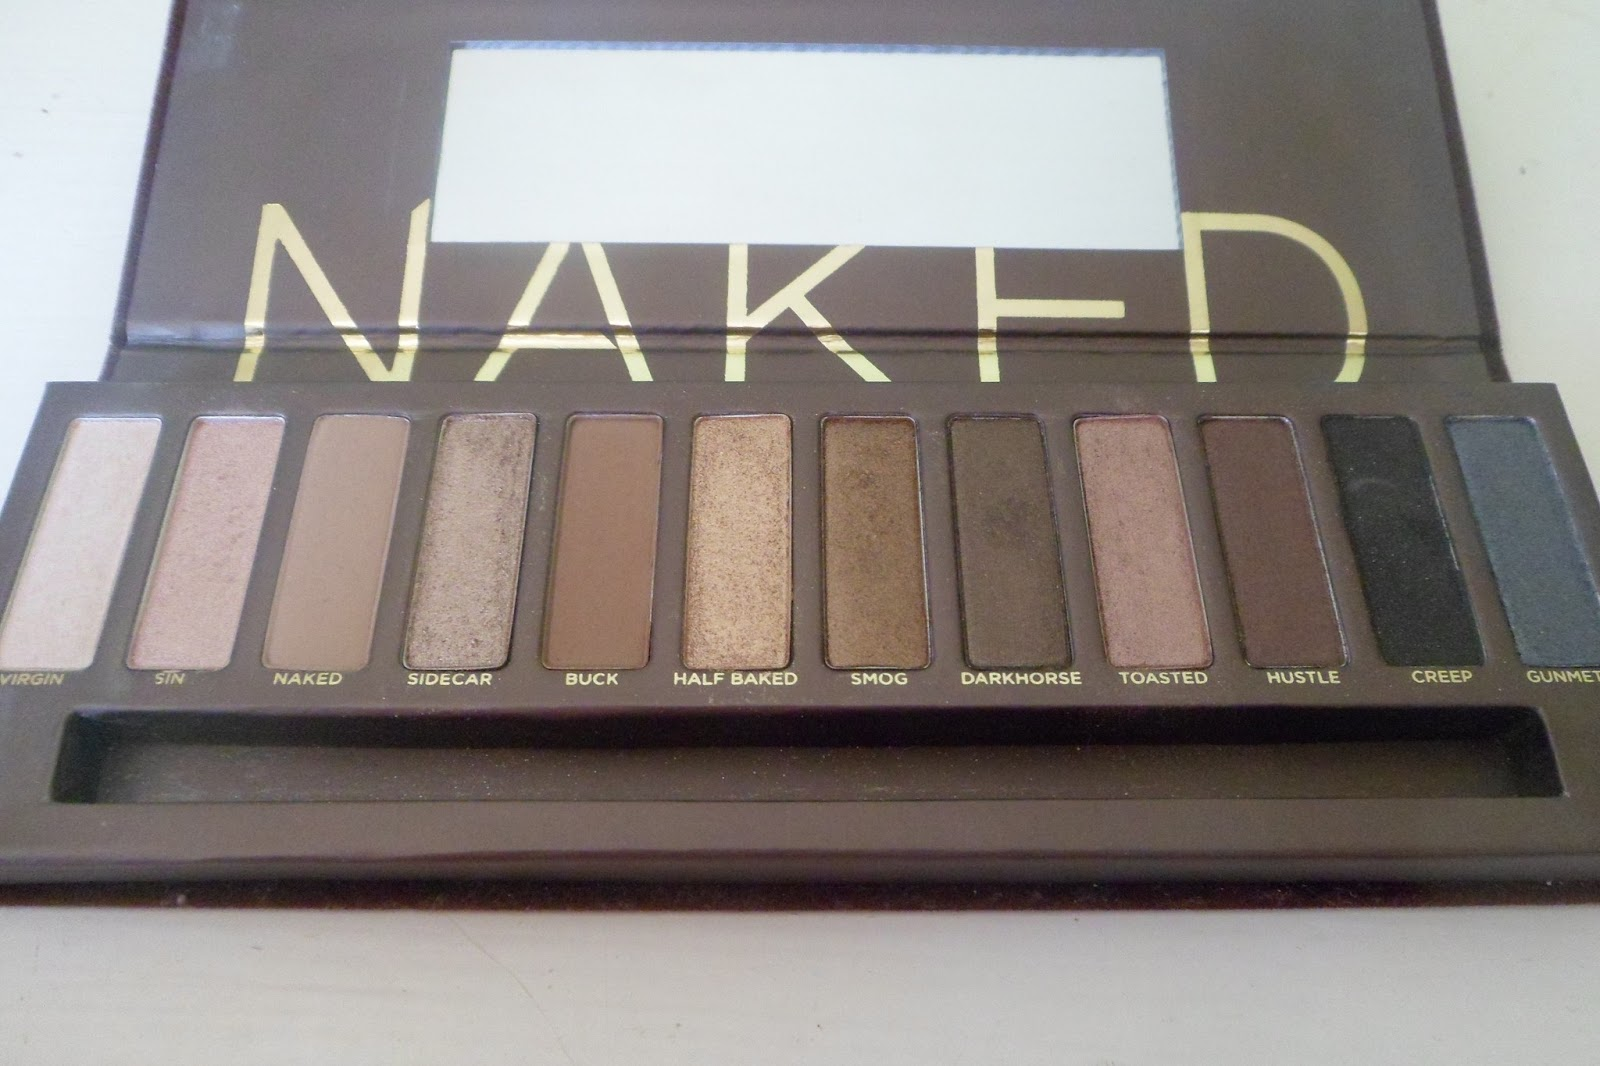 Urban decay naked palette review images 3